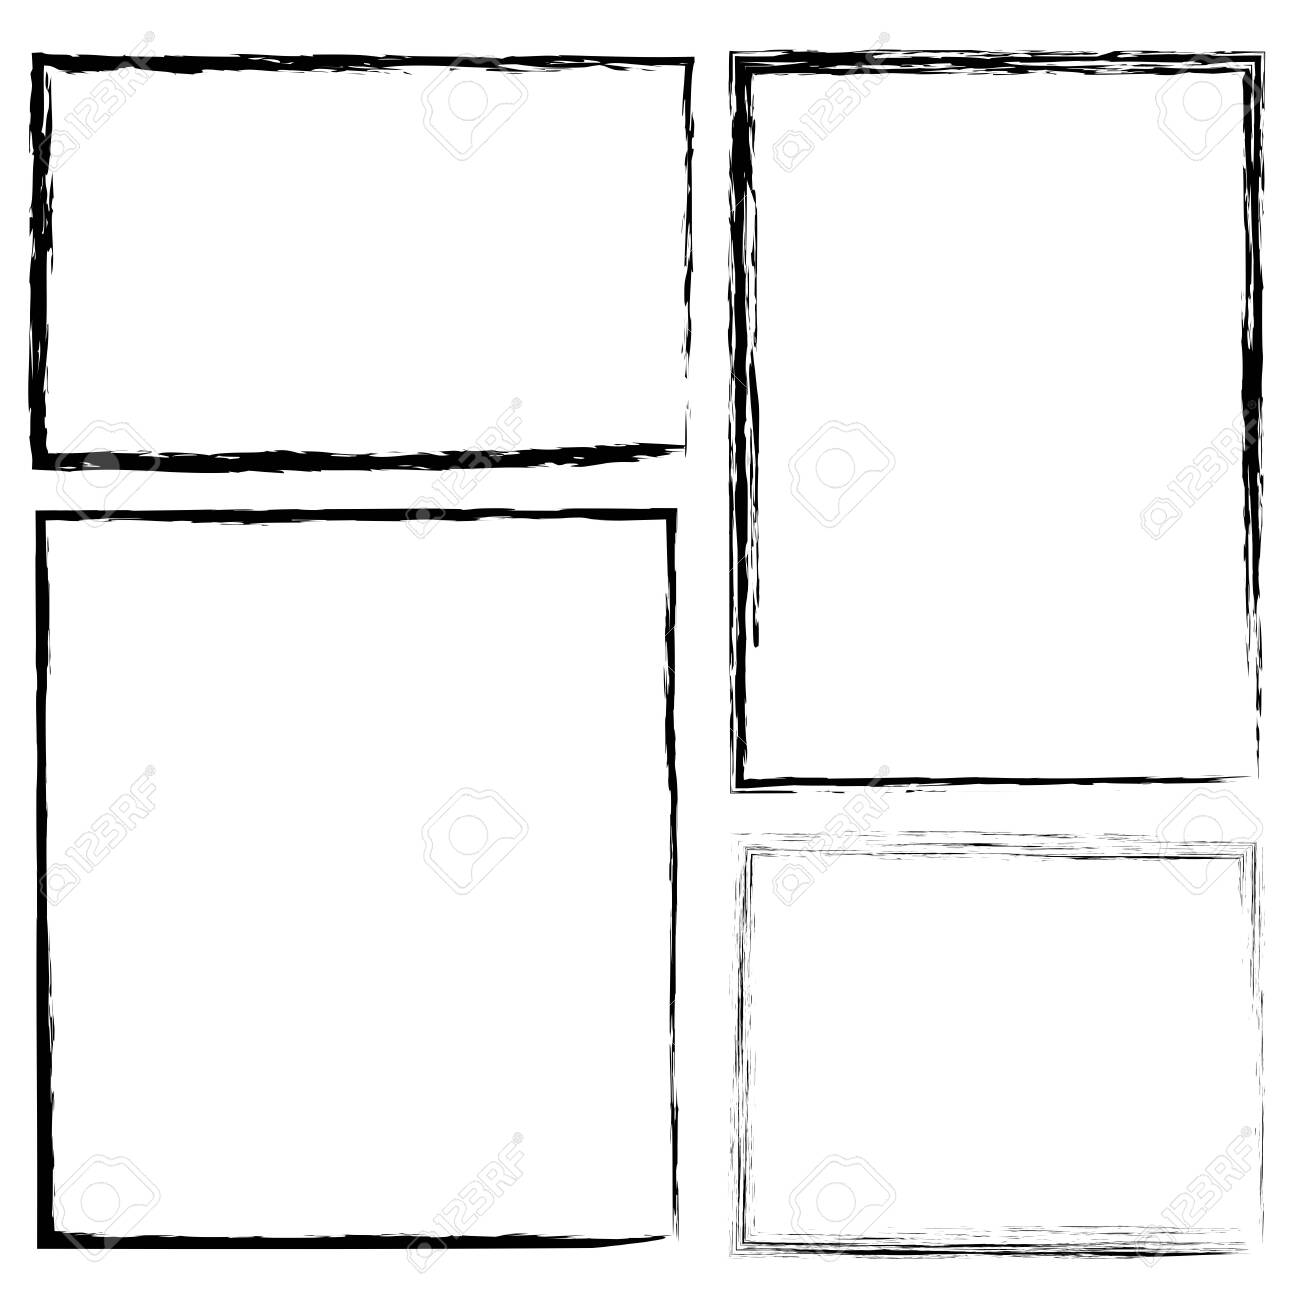 Hand-drawn brush border. Flat rectangle frame in grunge style. Pencil drawing. Stock photo. - 151575075